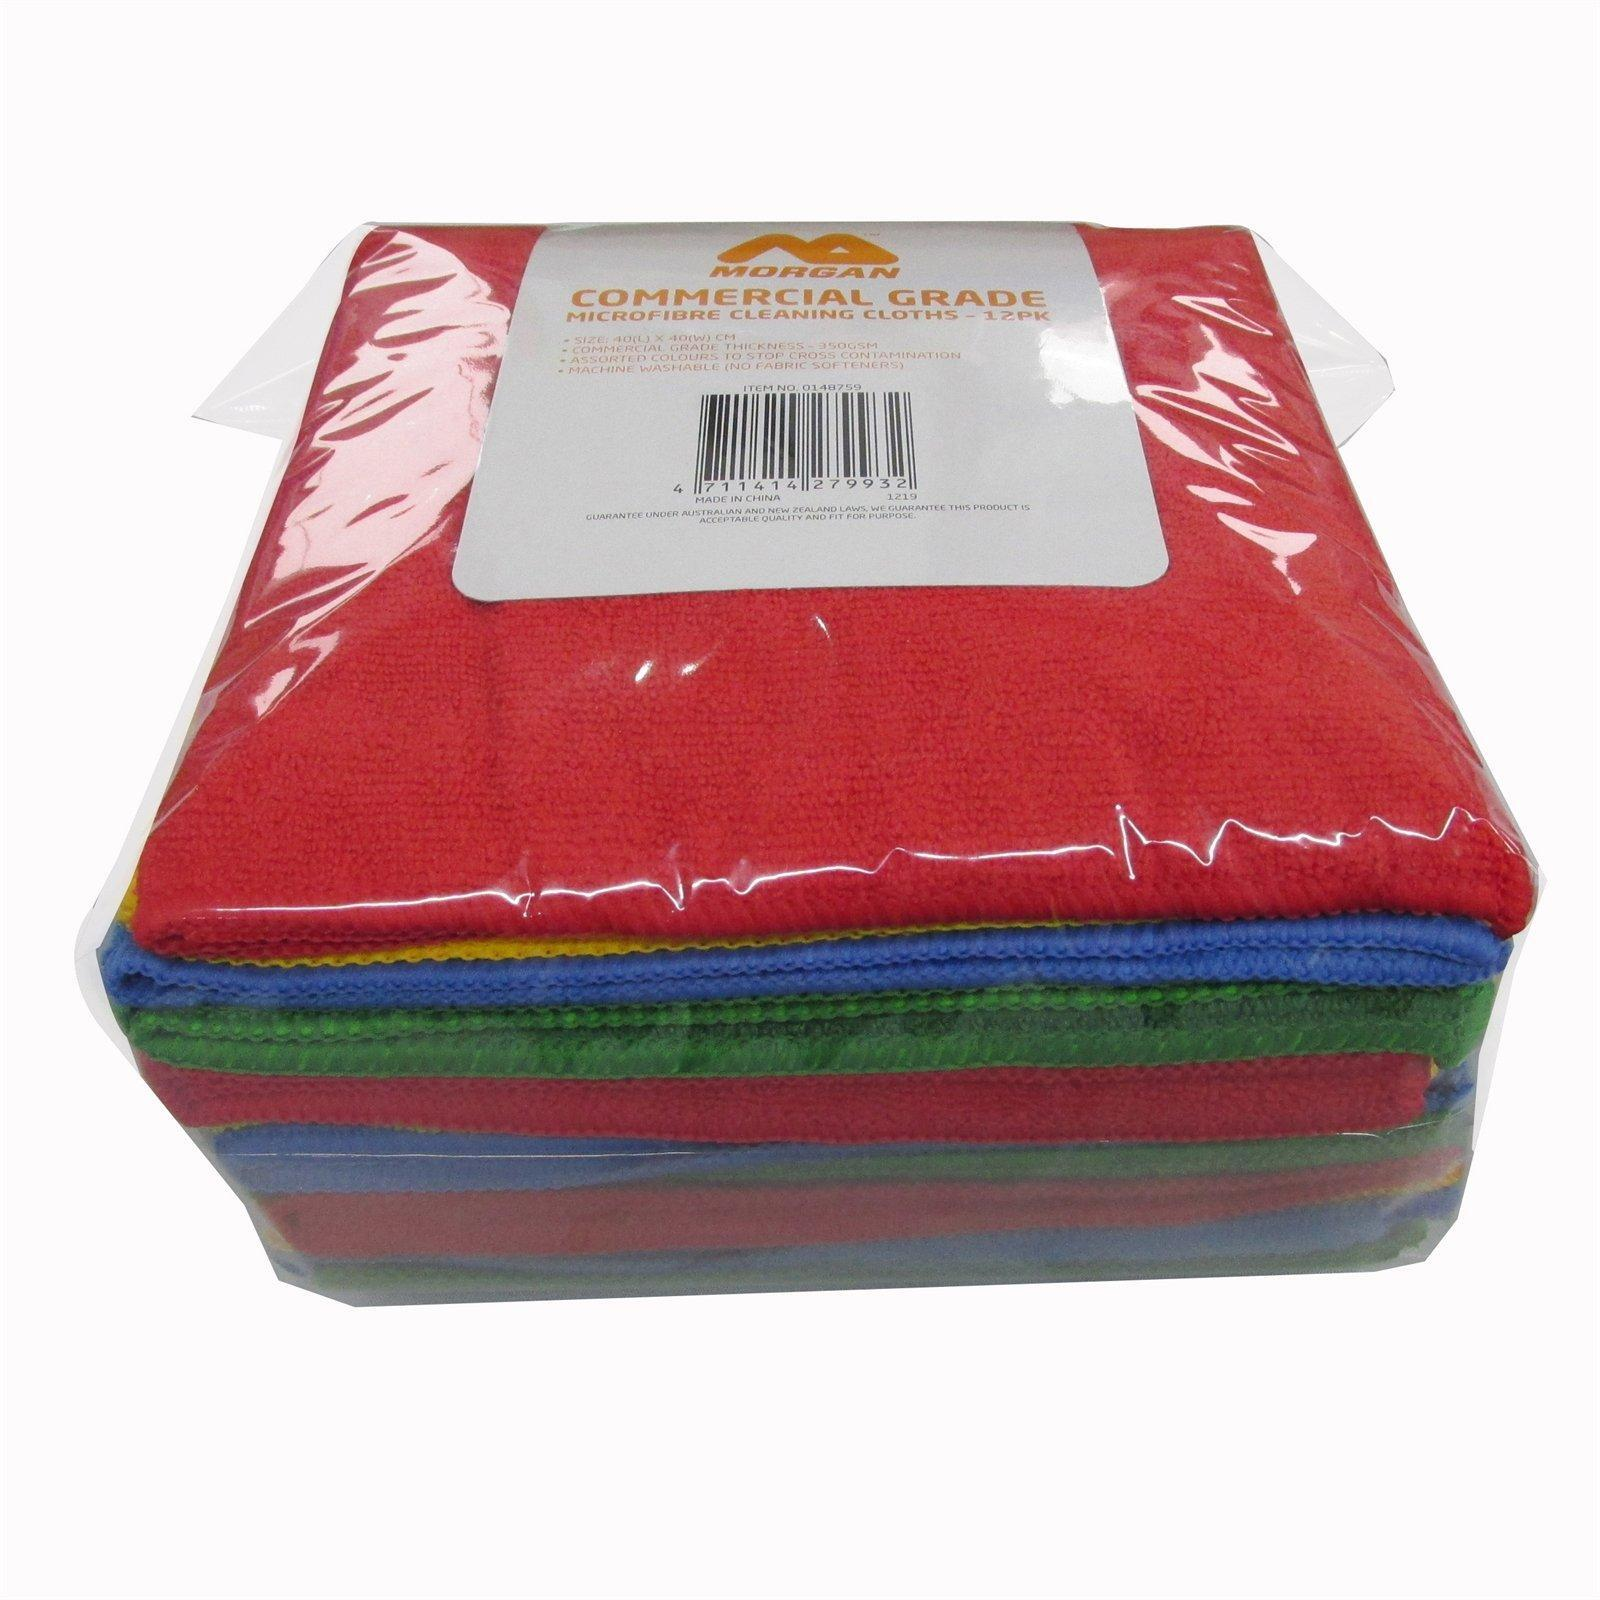 Morgan Commercial Grade 350gsm Microfibre Cleaning Cloth - 12 Pack